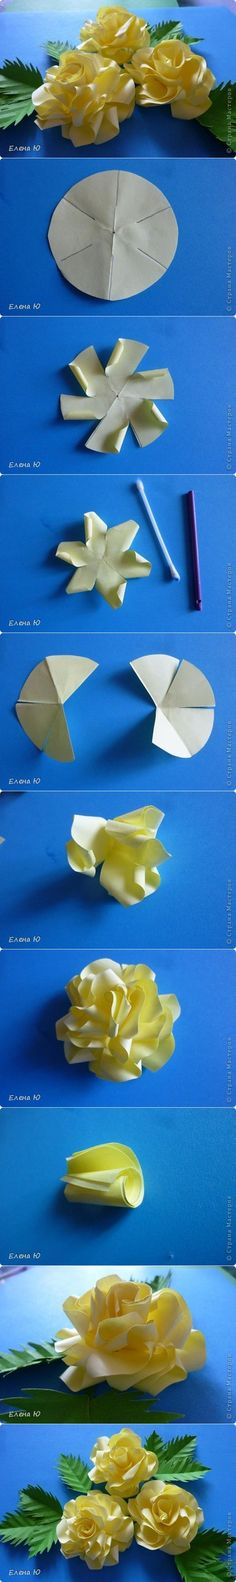 Flor de papel Here is a tutorial for DIY paper roses. First of all, you need round-shaped papers. Use the first one as the base of the flower. Cut and curl it as shown. Then, for the upper layers use of a pi… Tutorial Rosa, Rose Tutorial, Paper Flower Tutorial, Paper Flowers Diy, Handmade Flowers, Flower Crafts, Fabric Flowers, Craft Flowers, Origami Paper